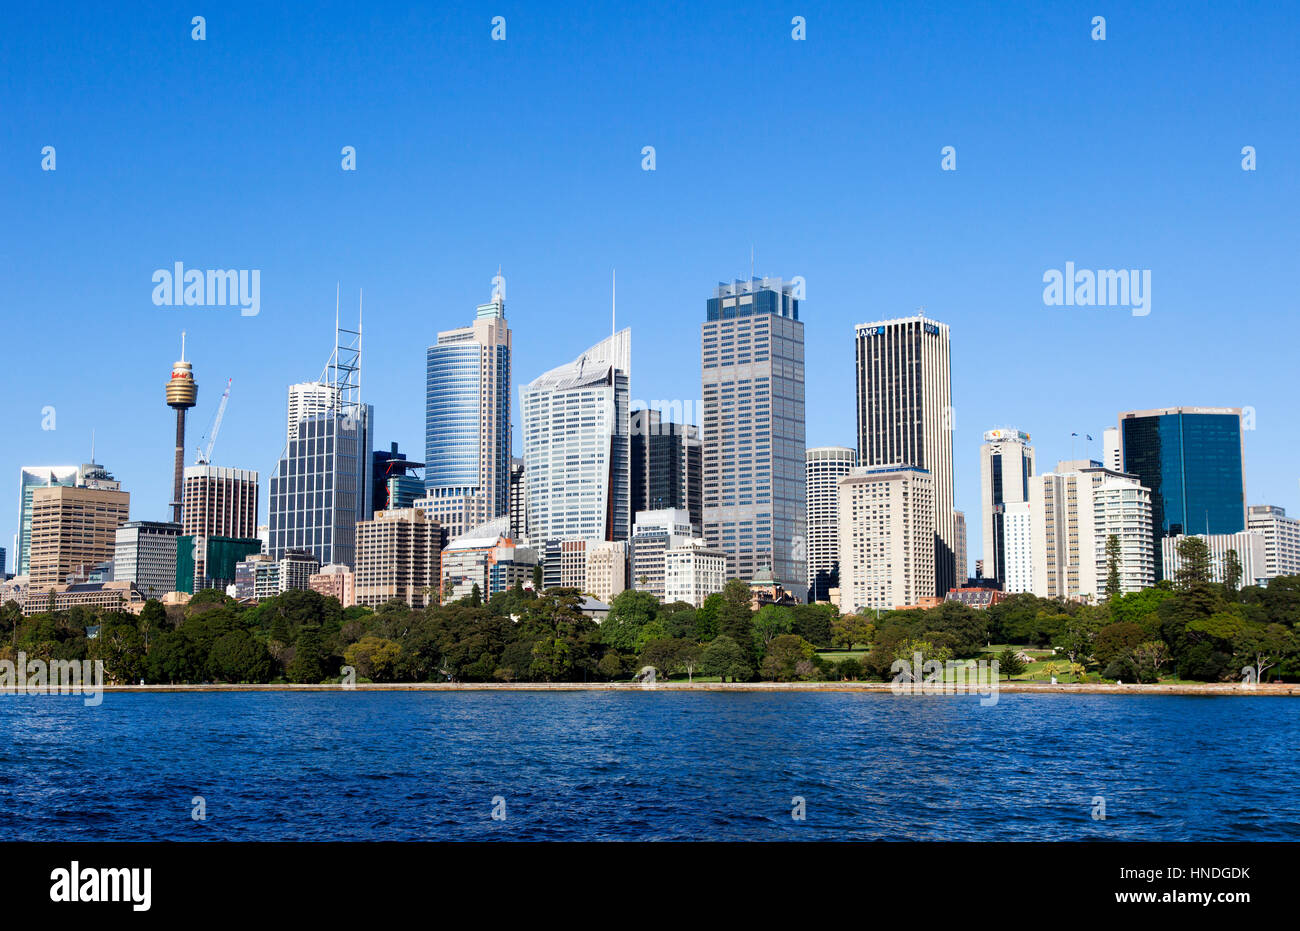 Downtown Sydney, Australia - Stock Image